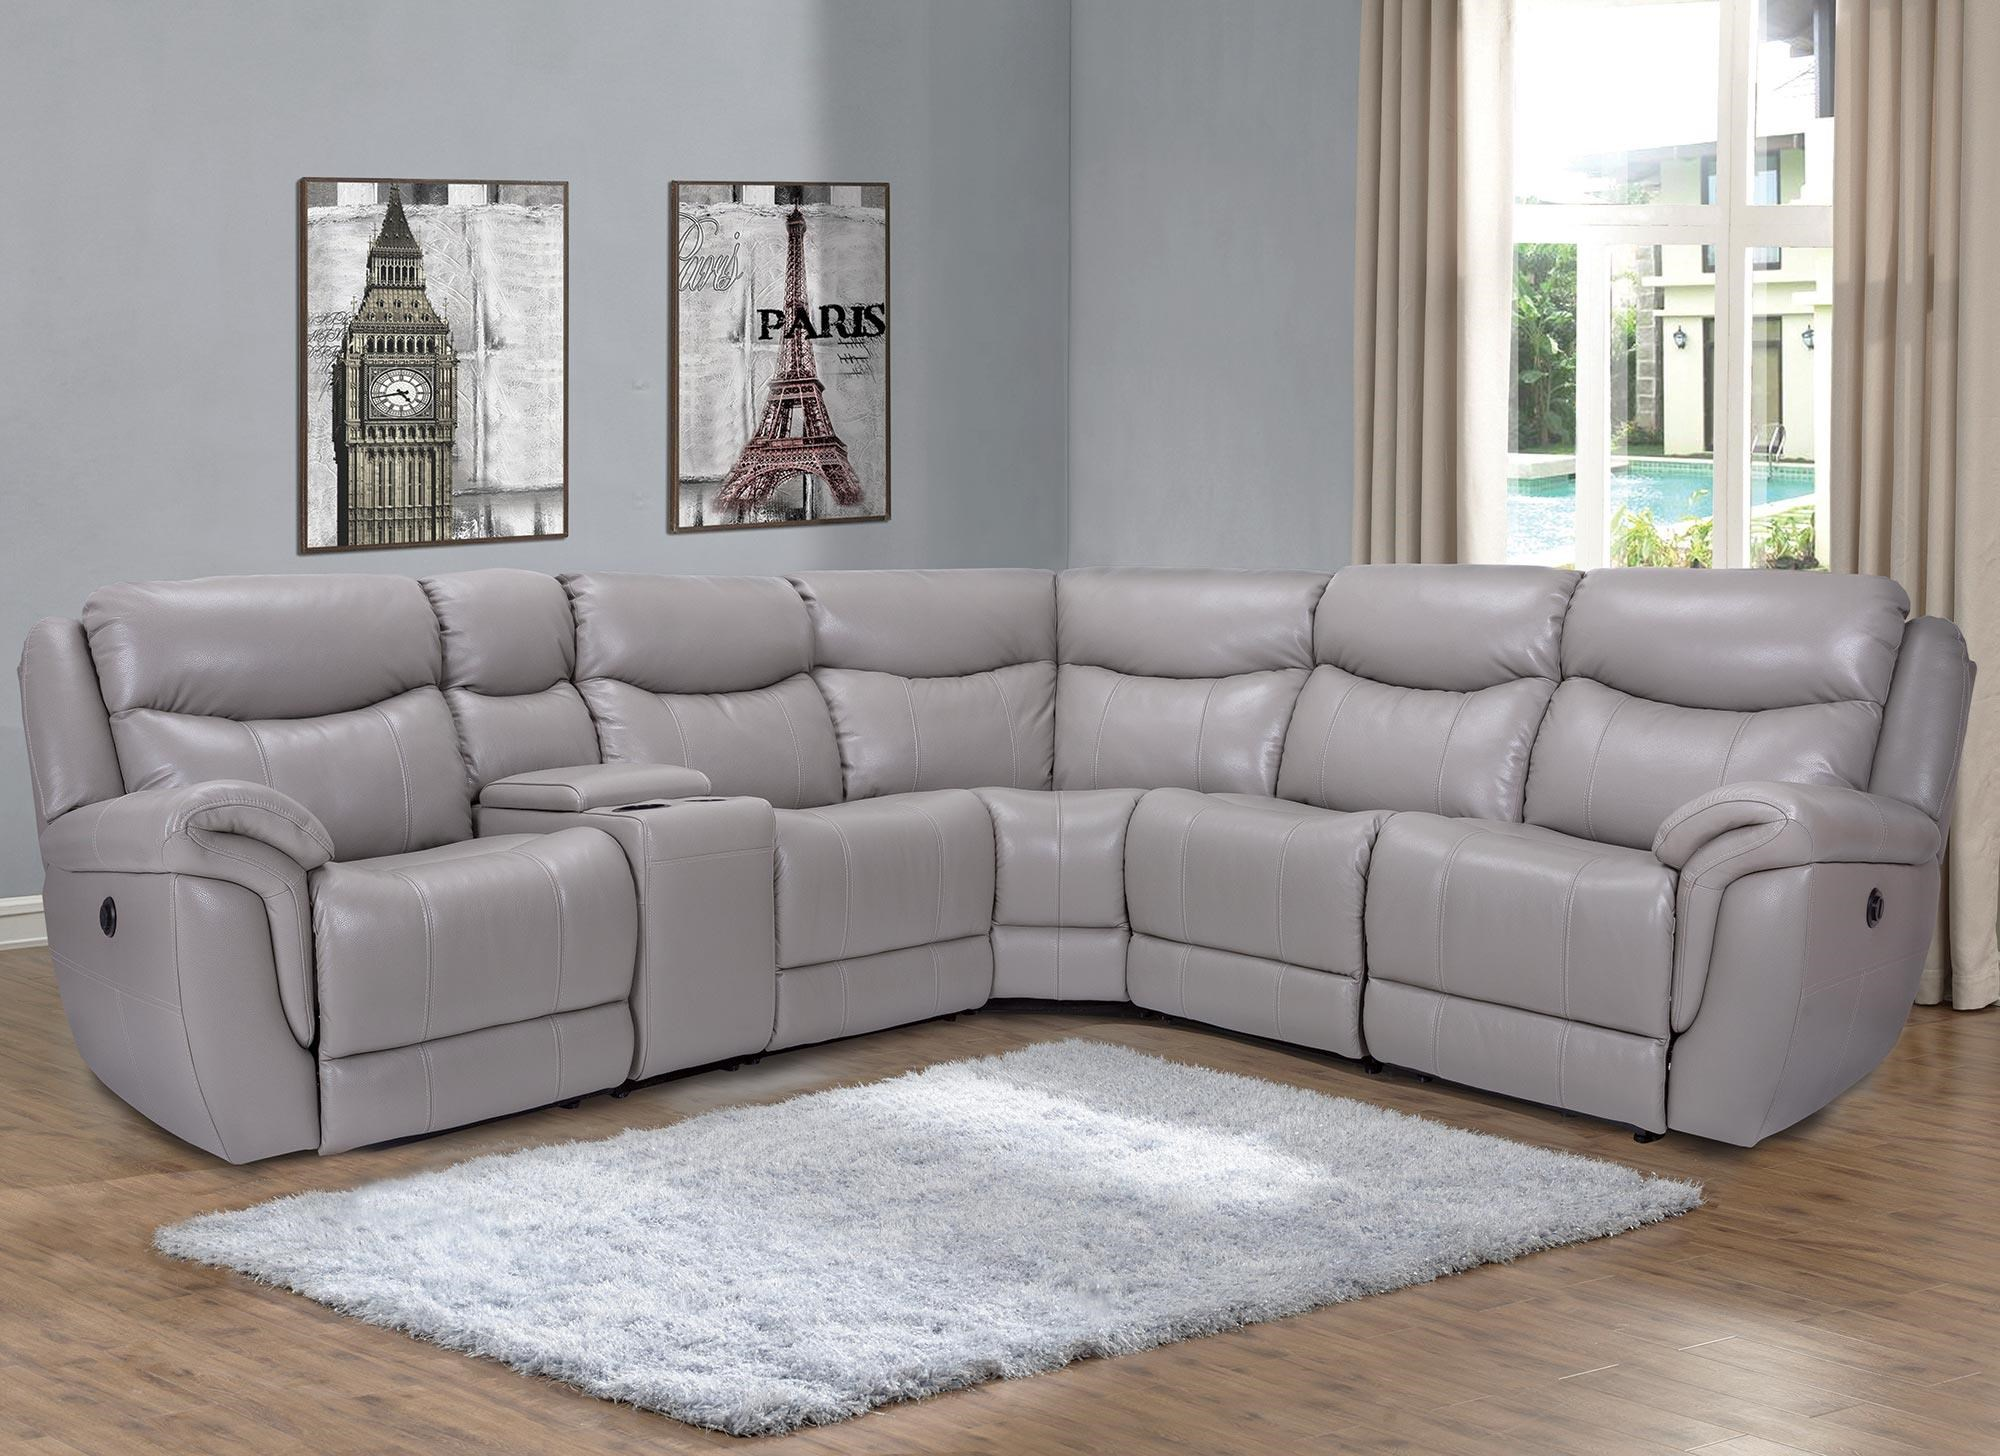 6PC Power Reclining Leather Sectional